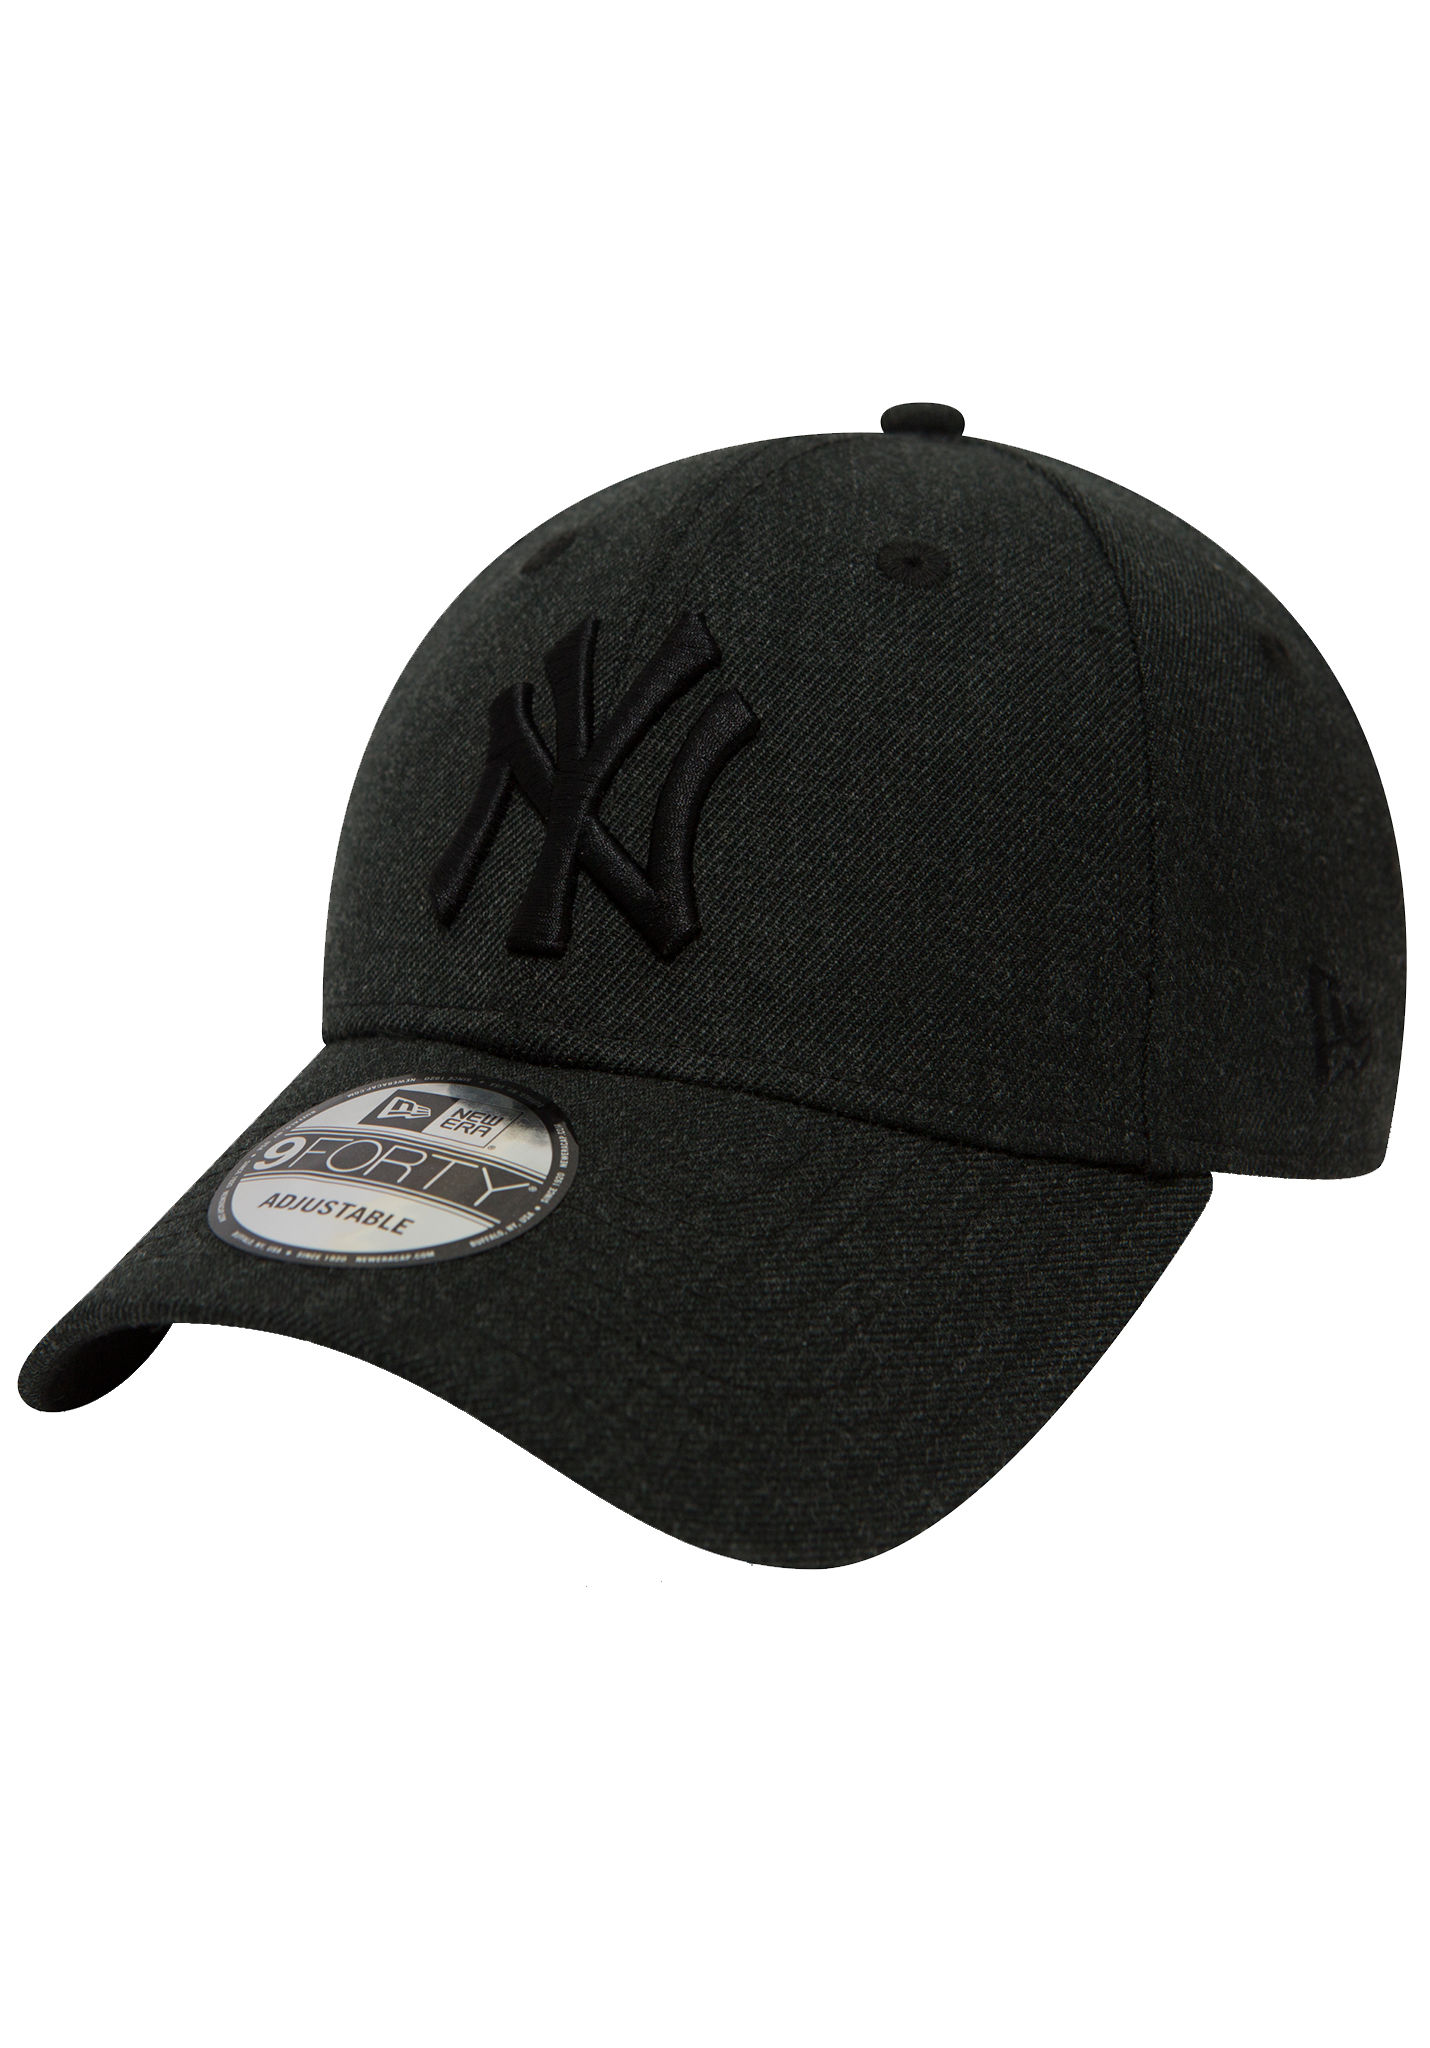 b3a36f33f944 NEW Era 9Forty New York Yankees - Strapback Cap - Black - Planet Sports